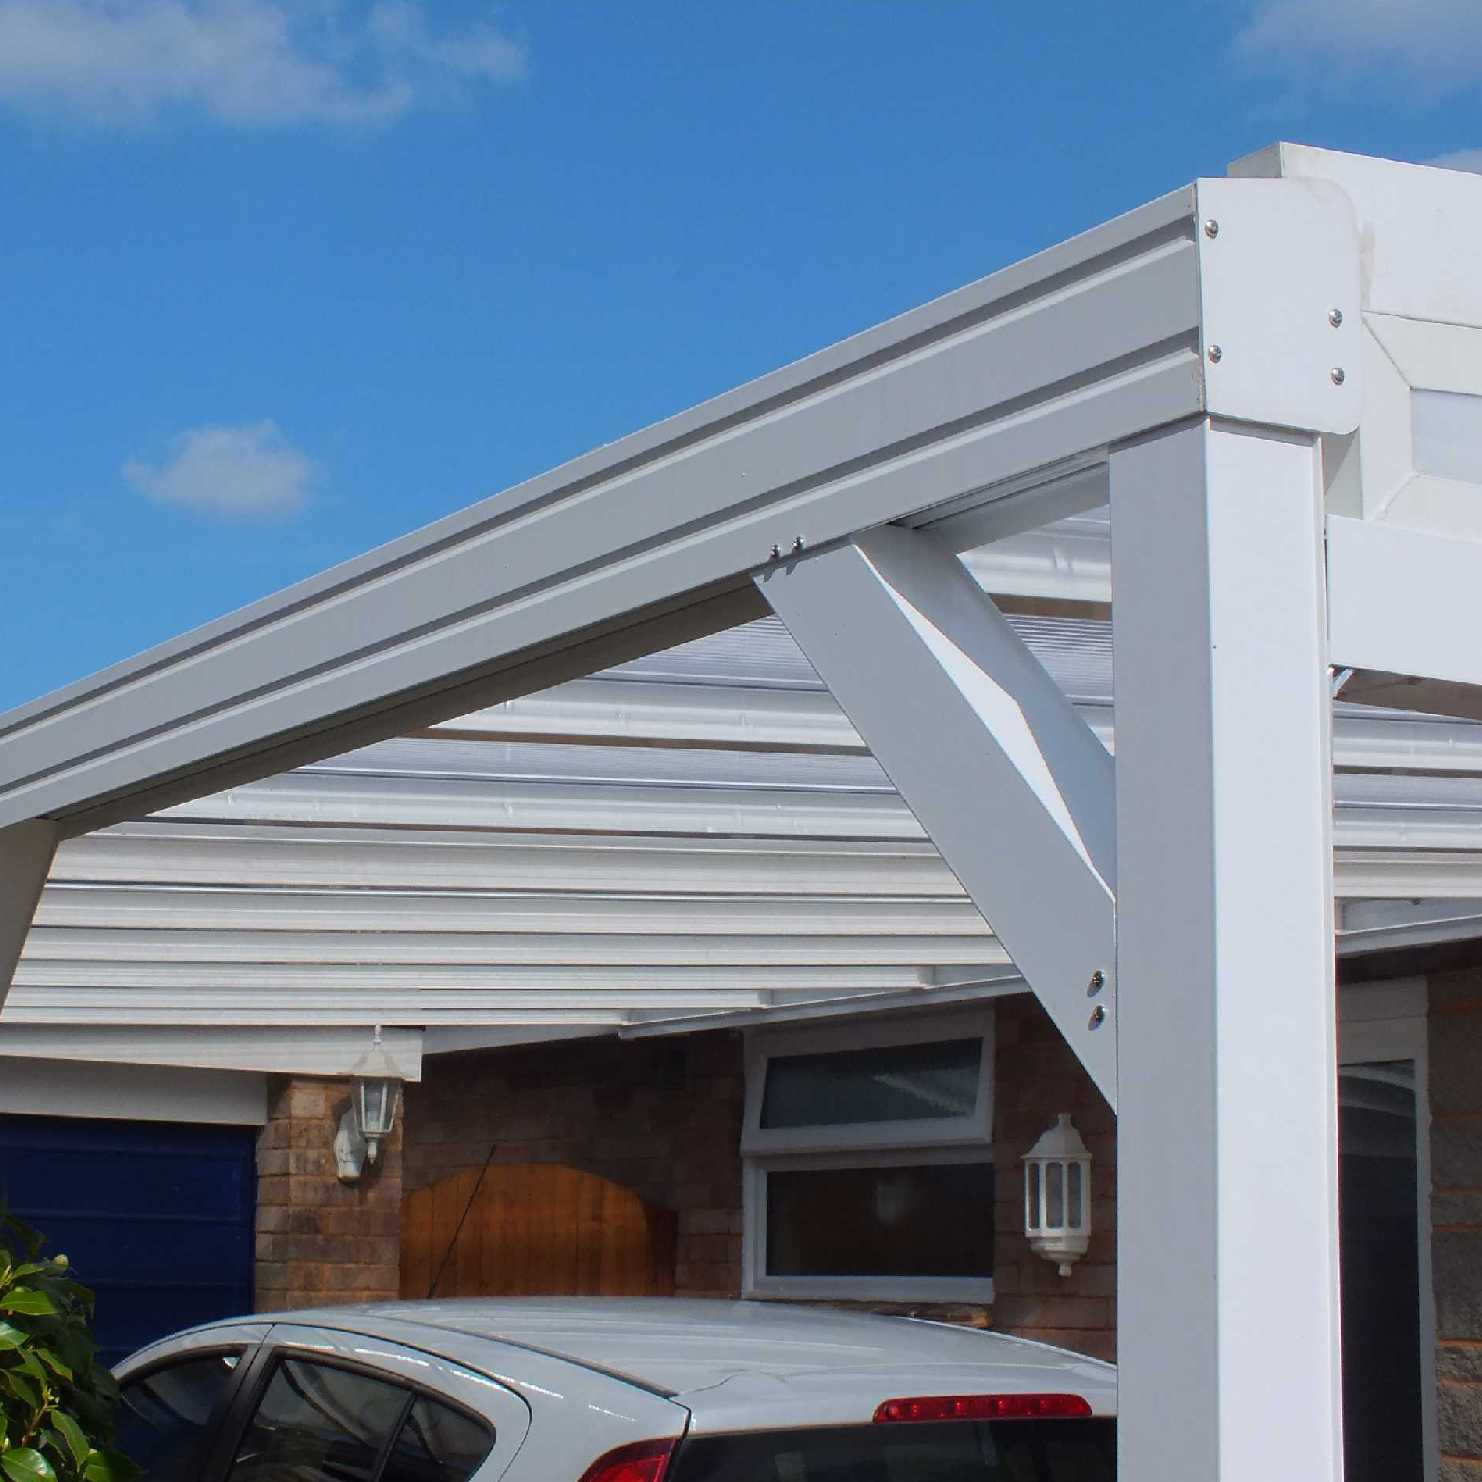 Great deals on Omega Smart White Lean-To Canopy with 16mm Polycarbonate Glazing - 9.2m (W) x 3.5m (P), (5) Supporting Posts